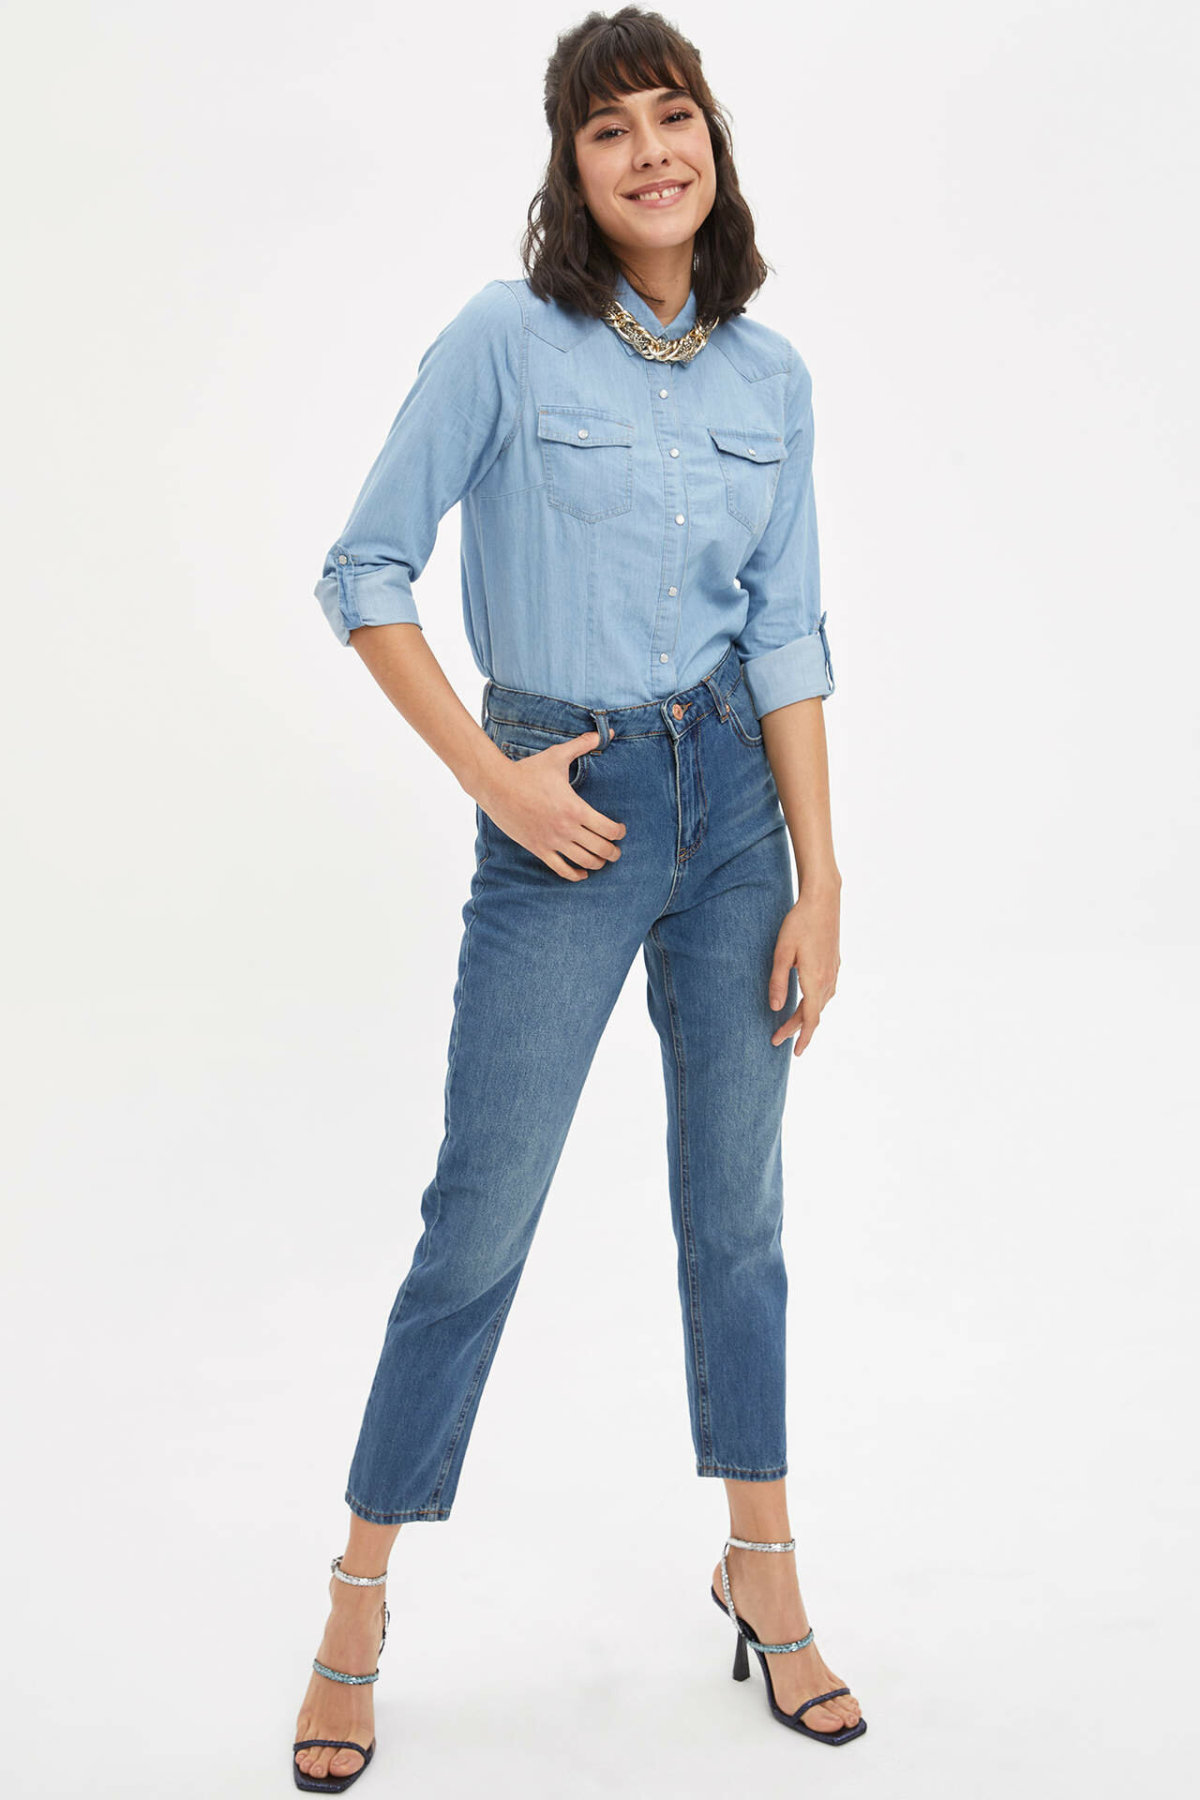 DeFacto Woman Blue Denim Jeans Women Casual Straight Denim Bottoms Female Ninth Pants Trousers-L6282AZ20SP